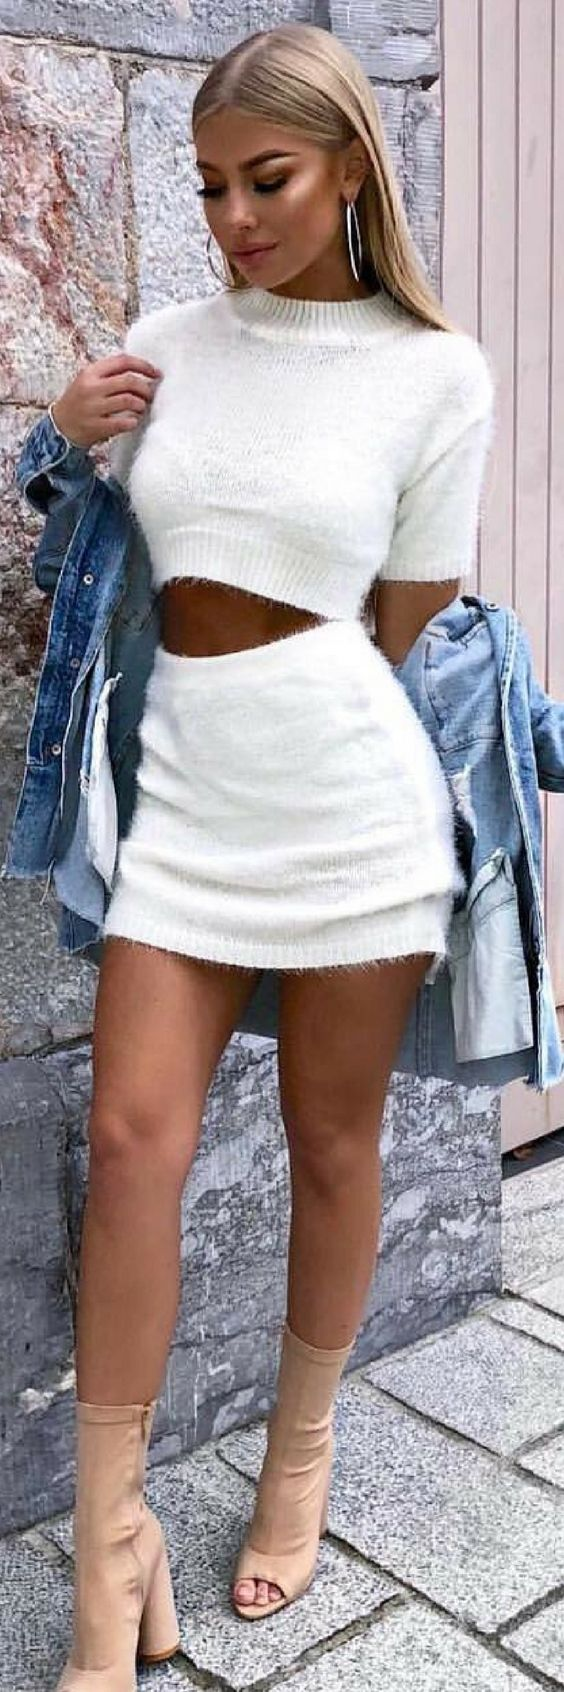 10 Sensational Winter Outfits To Make You Look Outstanding https://ecstasymodels.blog/2017/12/14/10-sensational-winter-outfits/